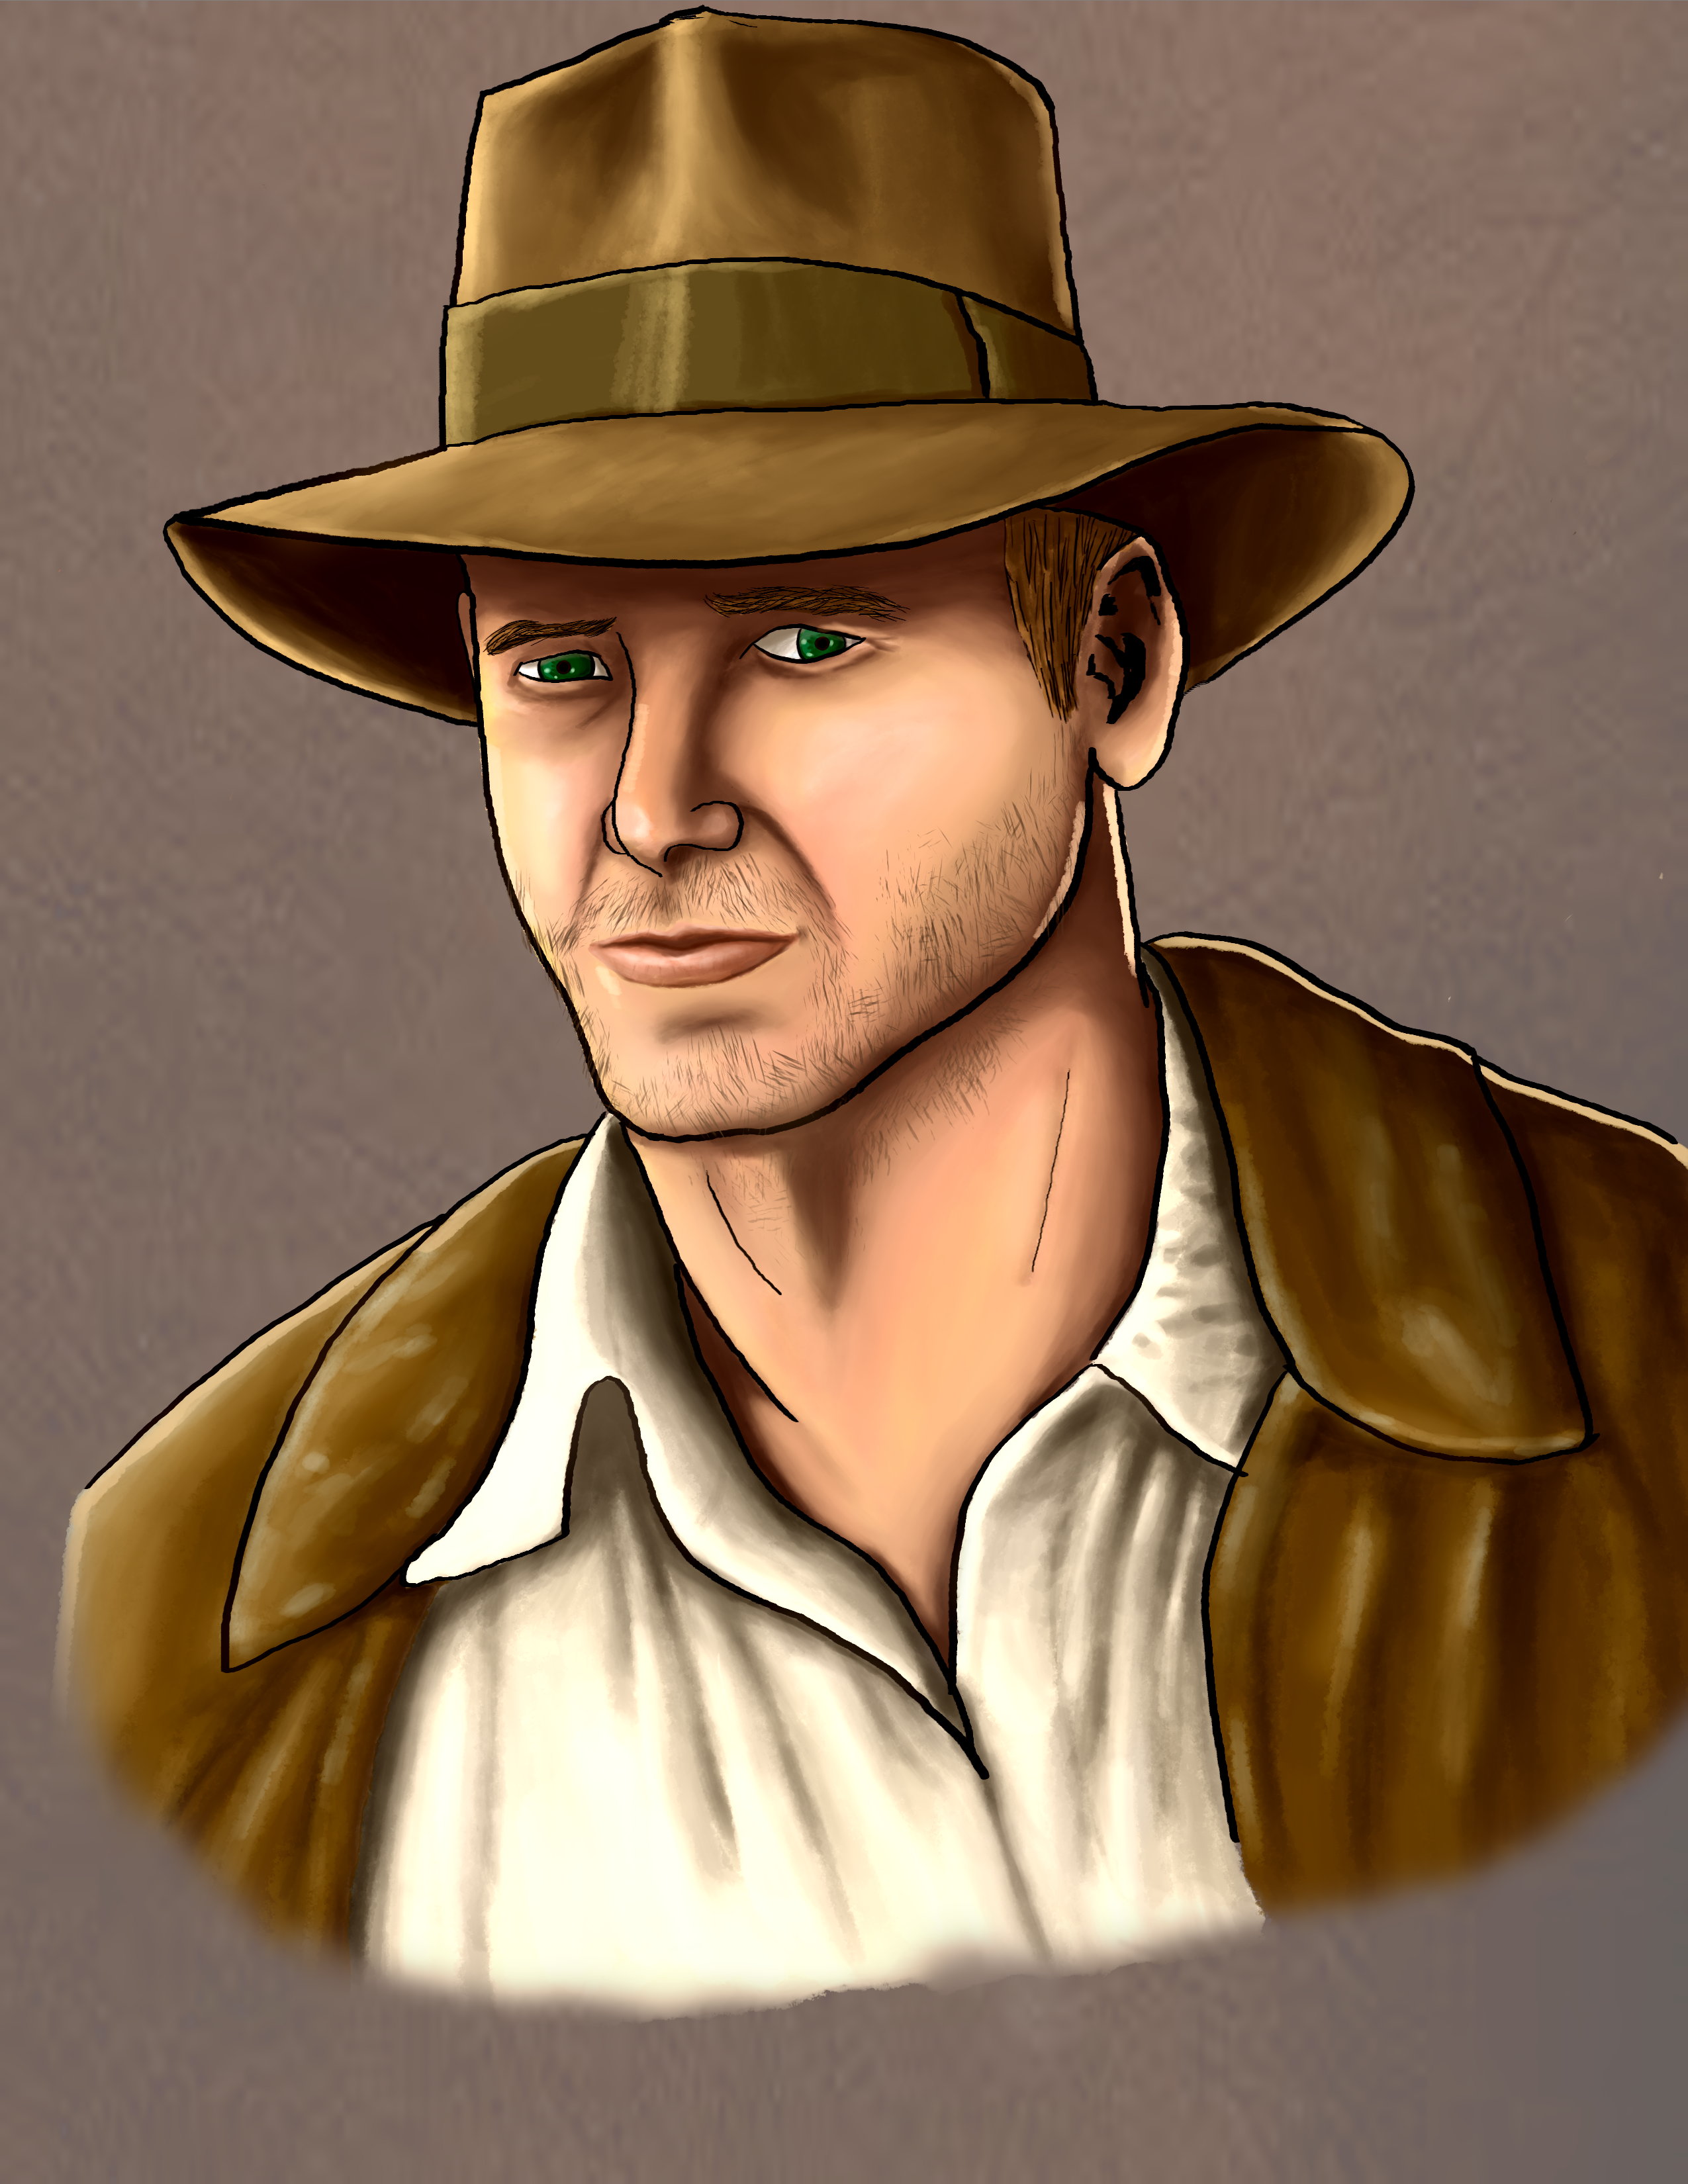 Harrison Ford as Indianna Jones